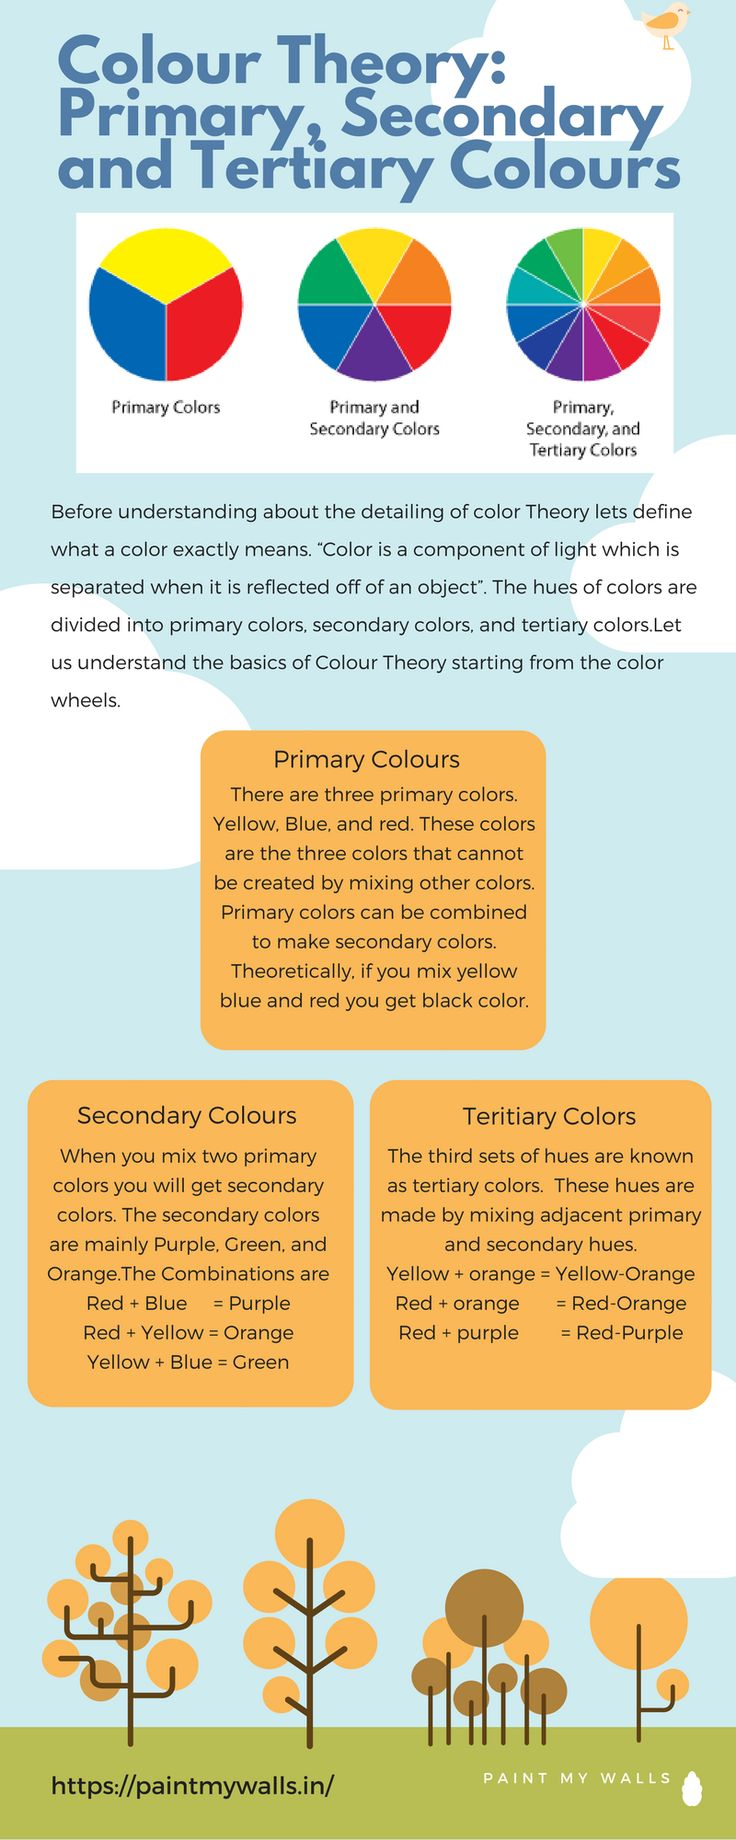 A Quick View On Primary, Secondary And Tertiary Colours